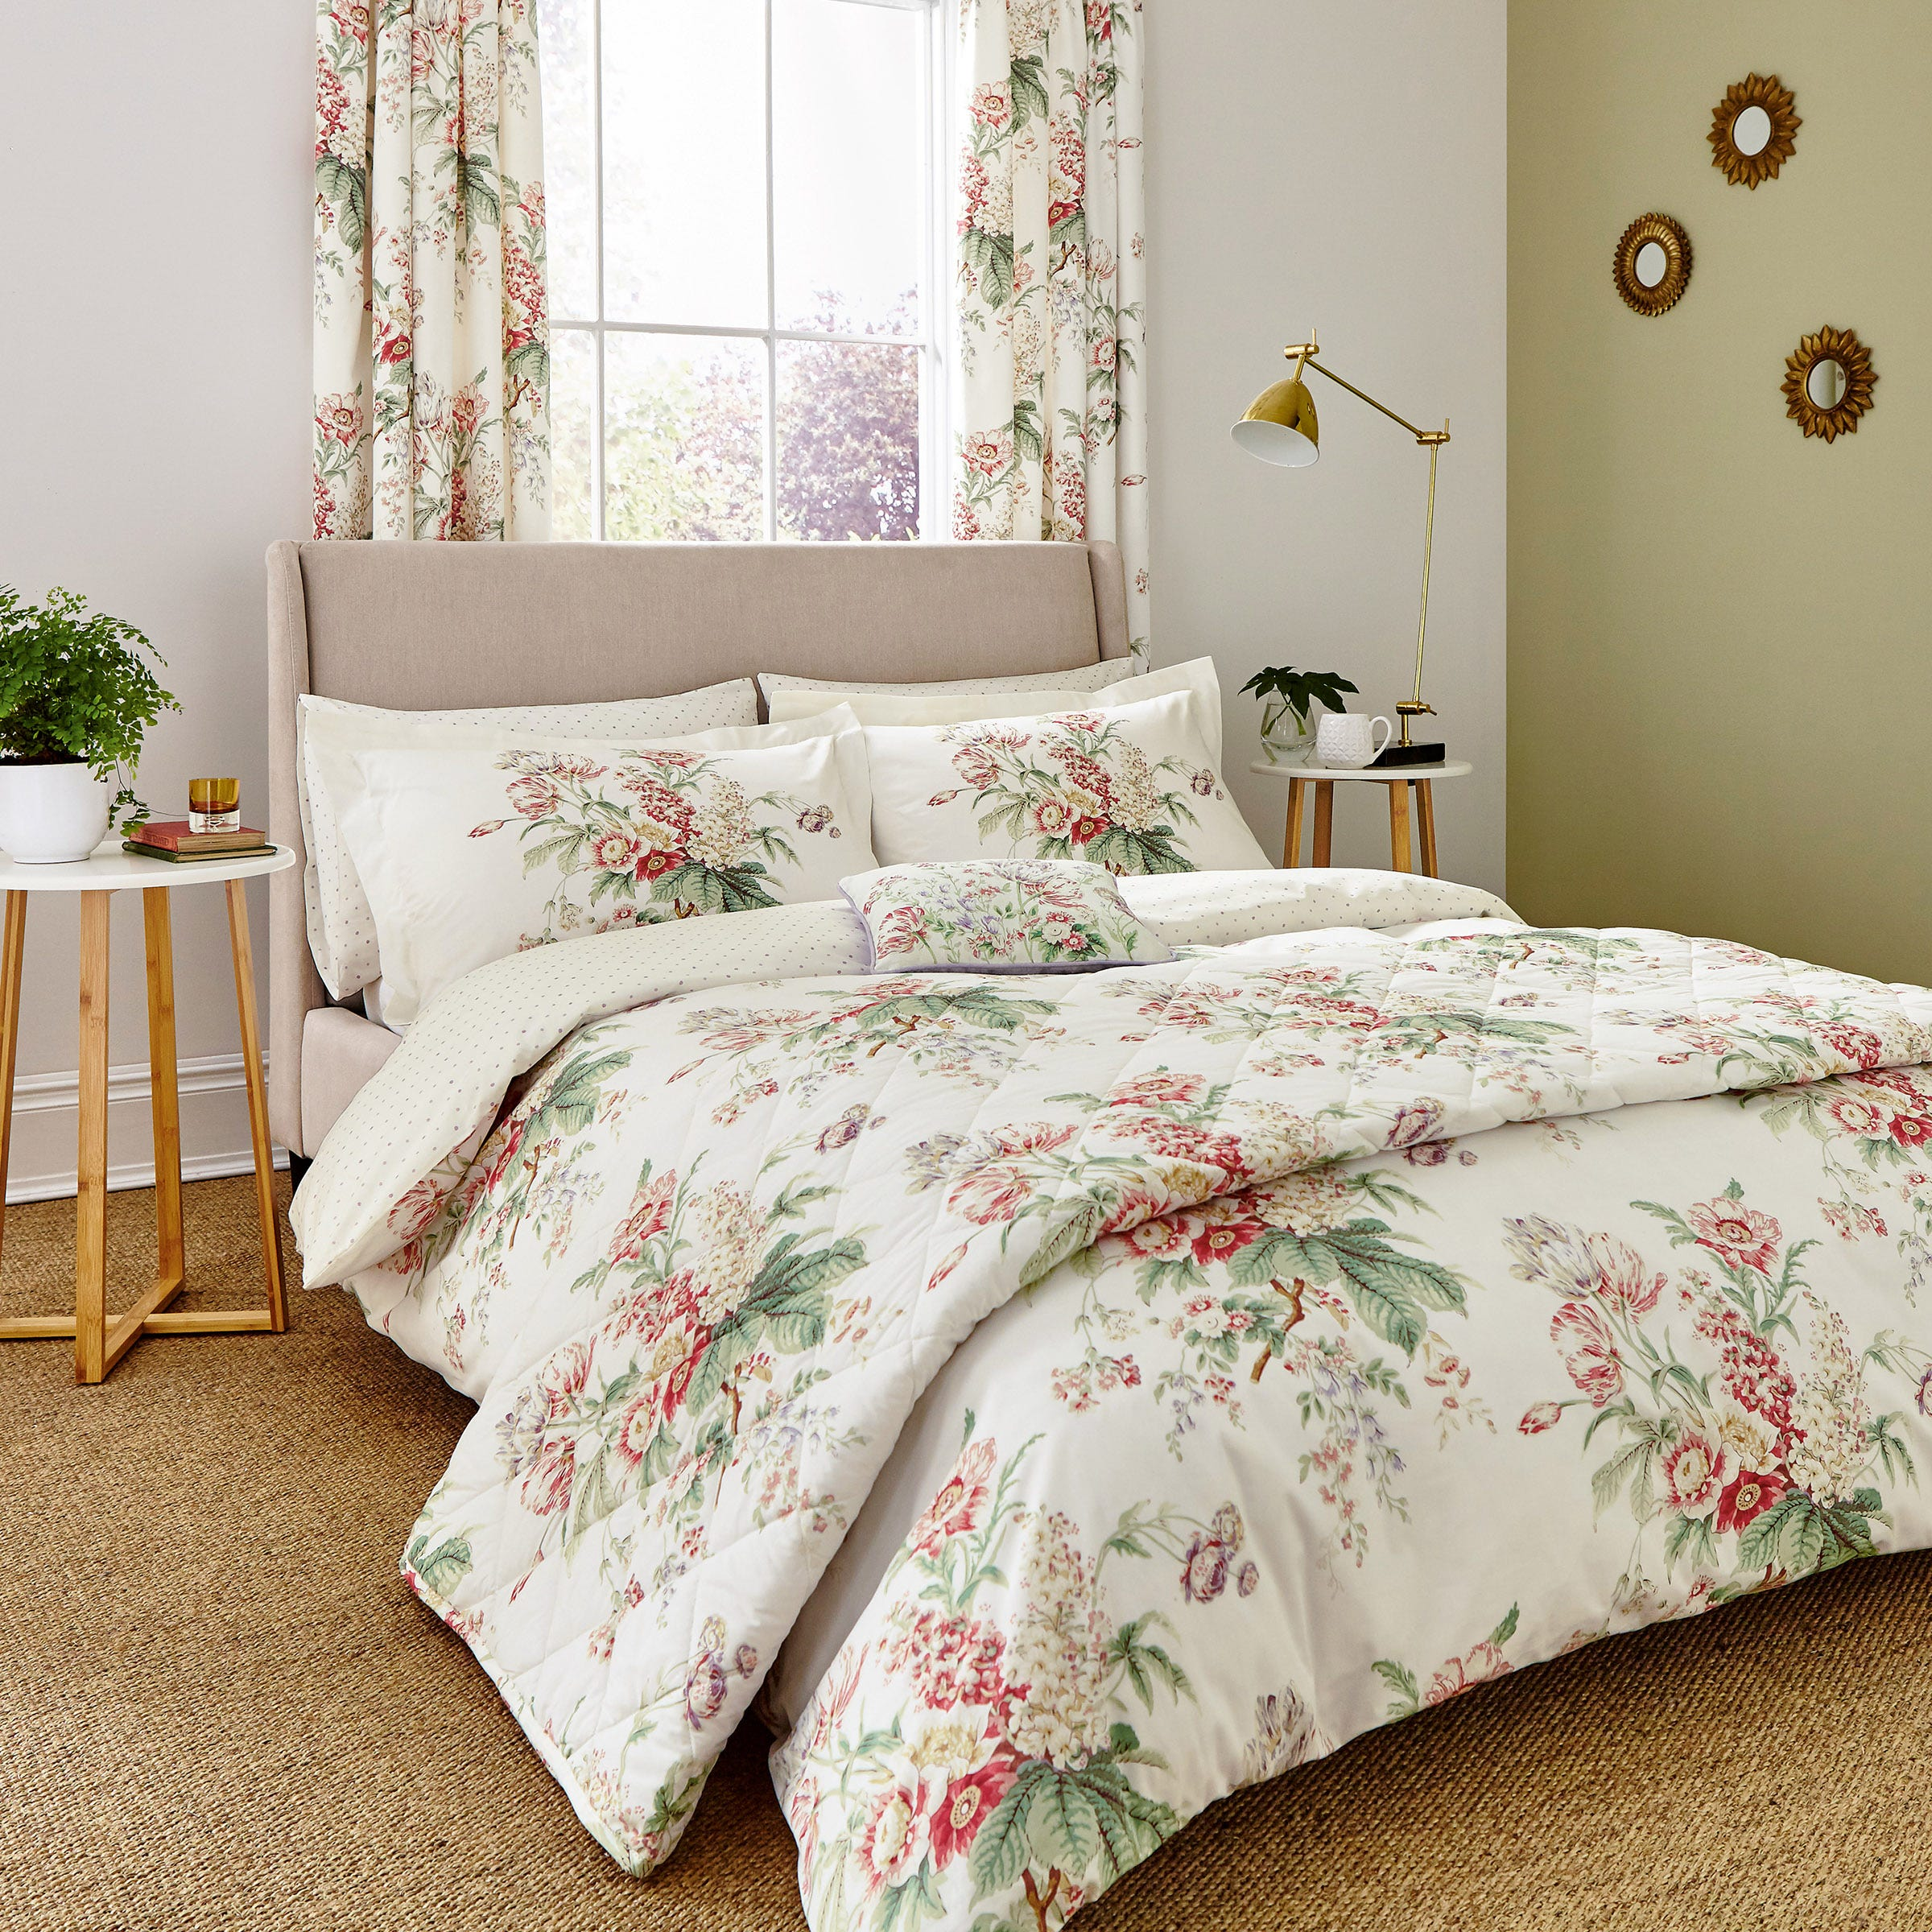 Sanderson Bedding Tournier Kingsize Duvet Cover Strawberry